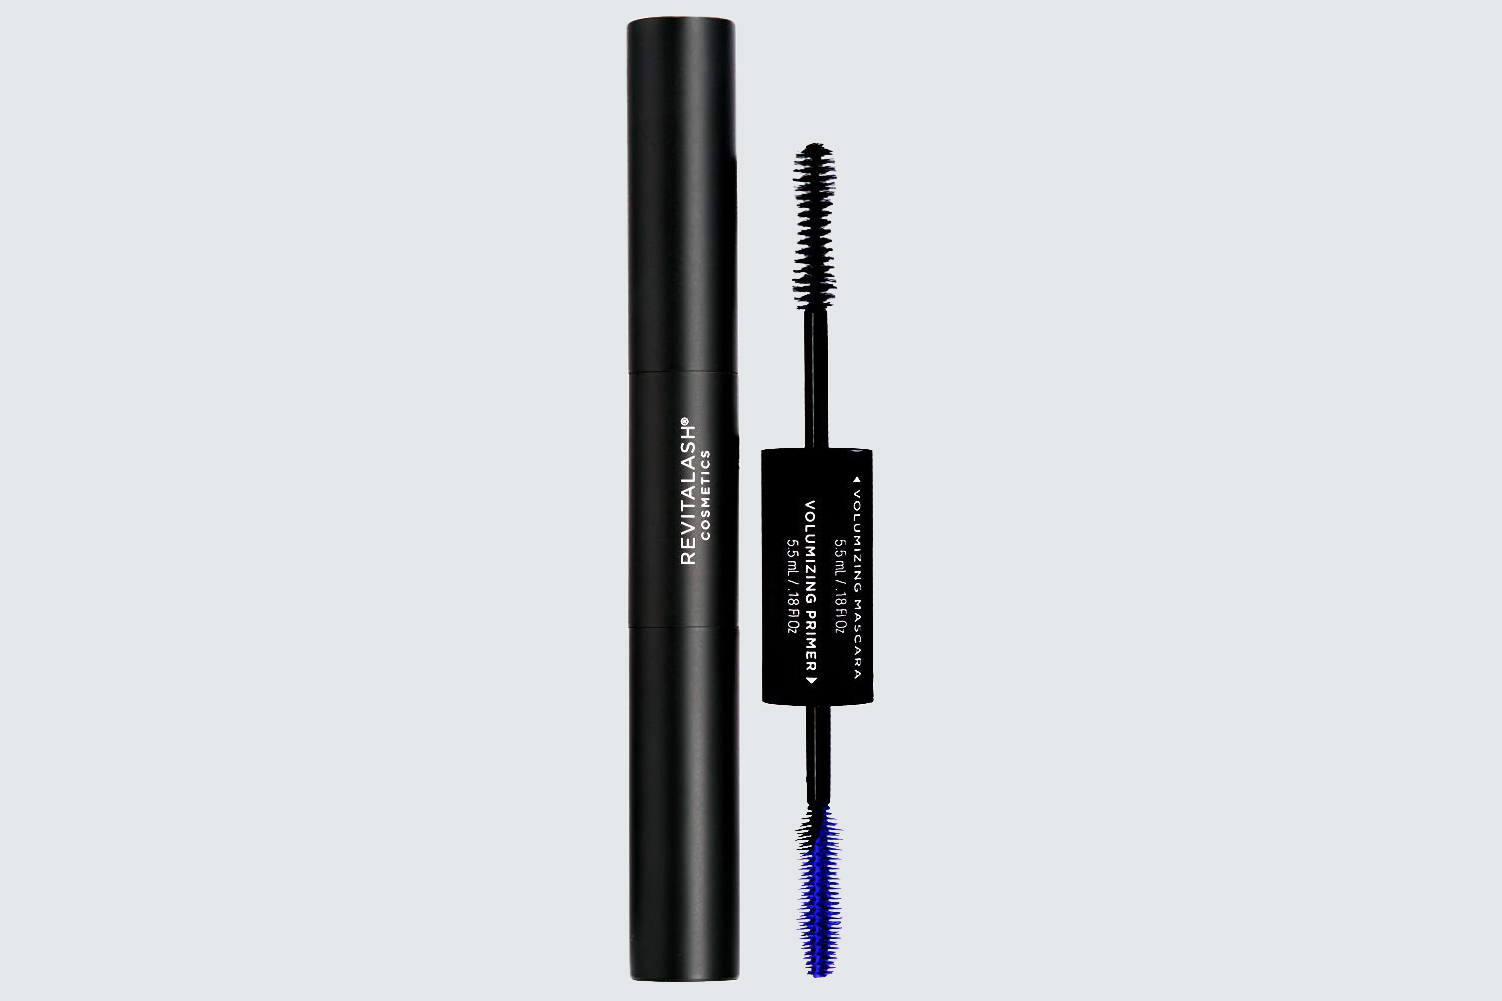 RevitaLash Volumizing Primer and Mascara